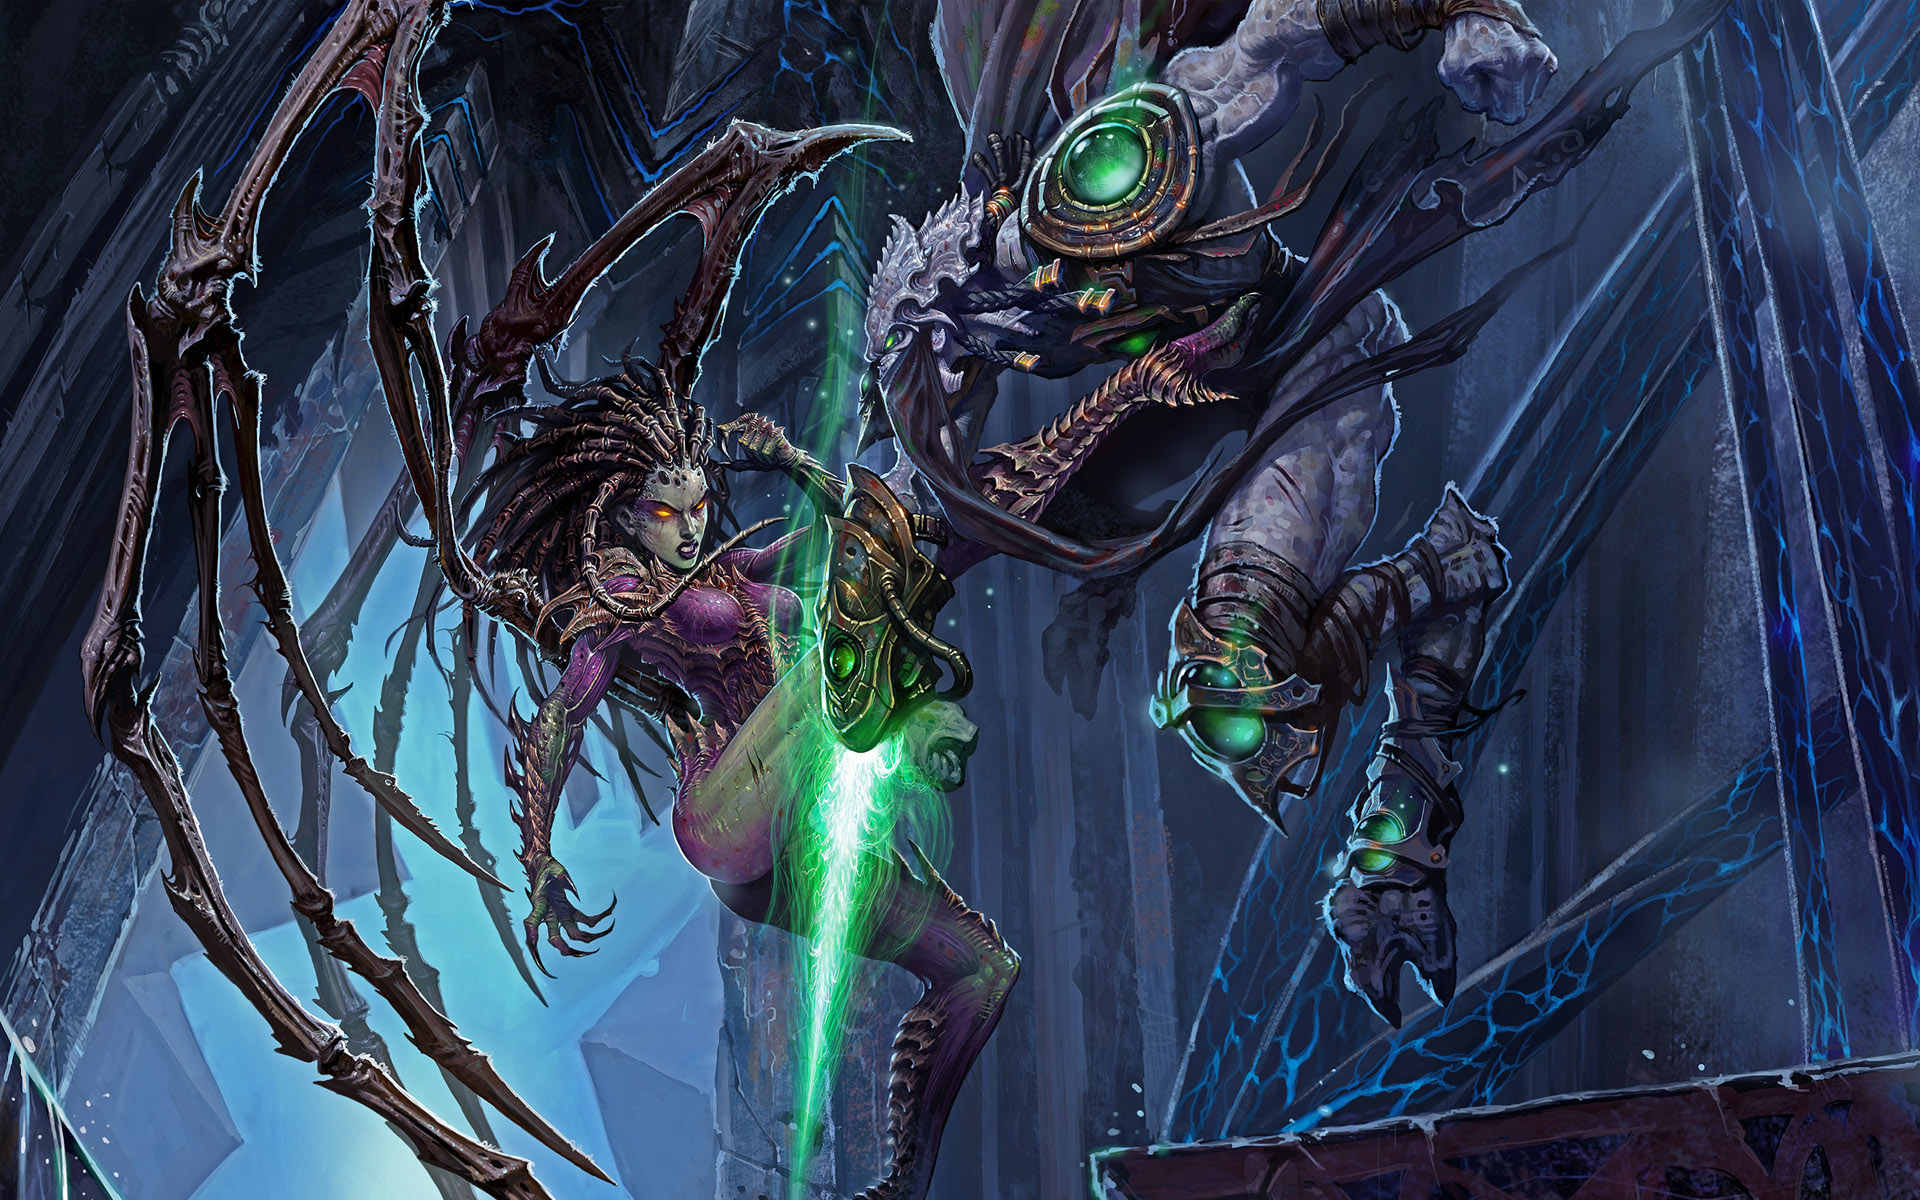 Zeratul and the Queen of Blades